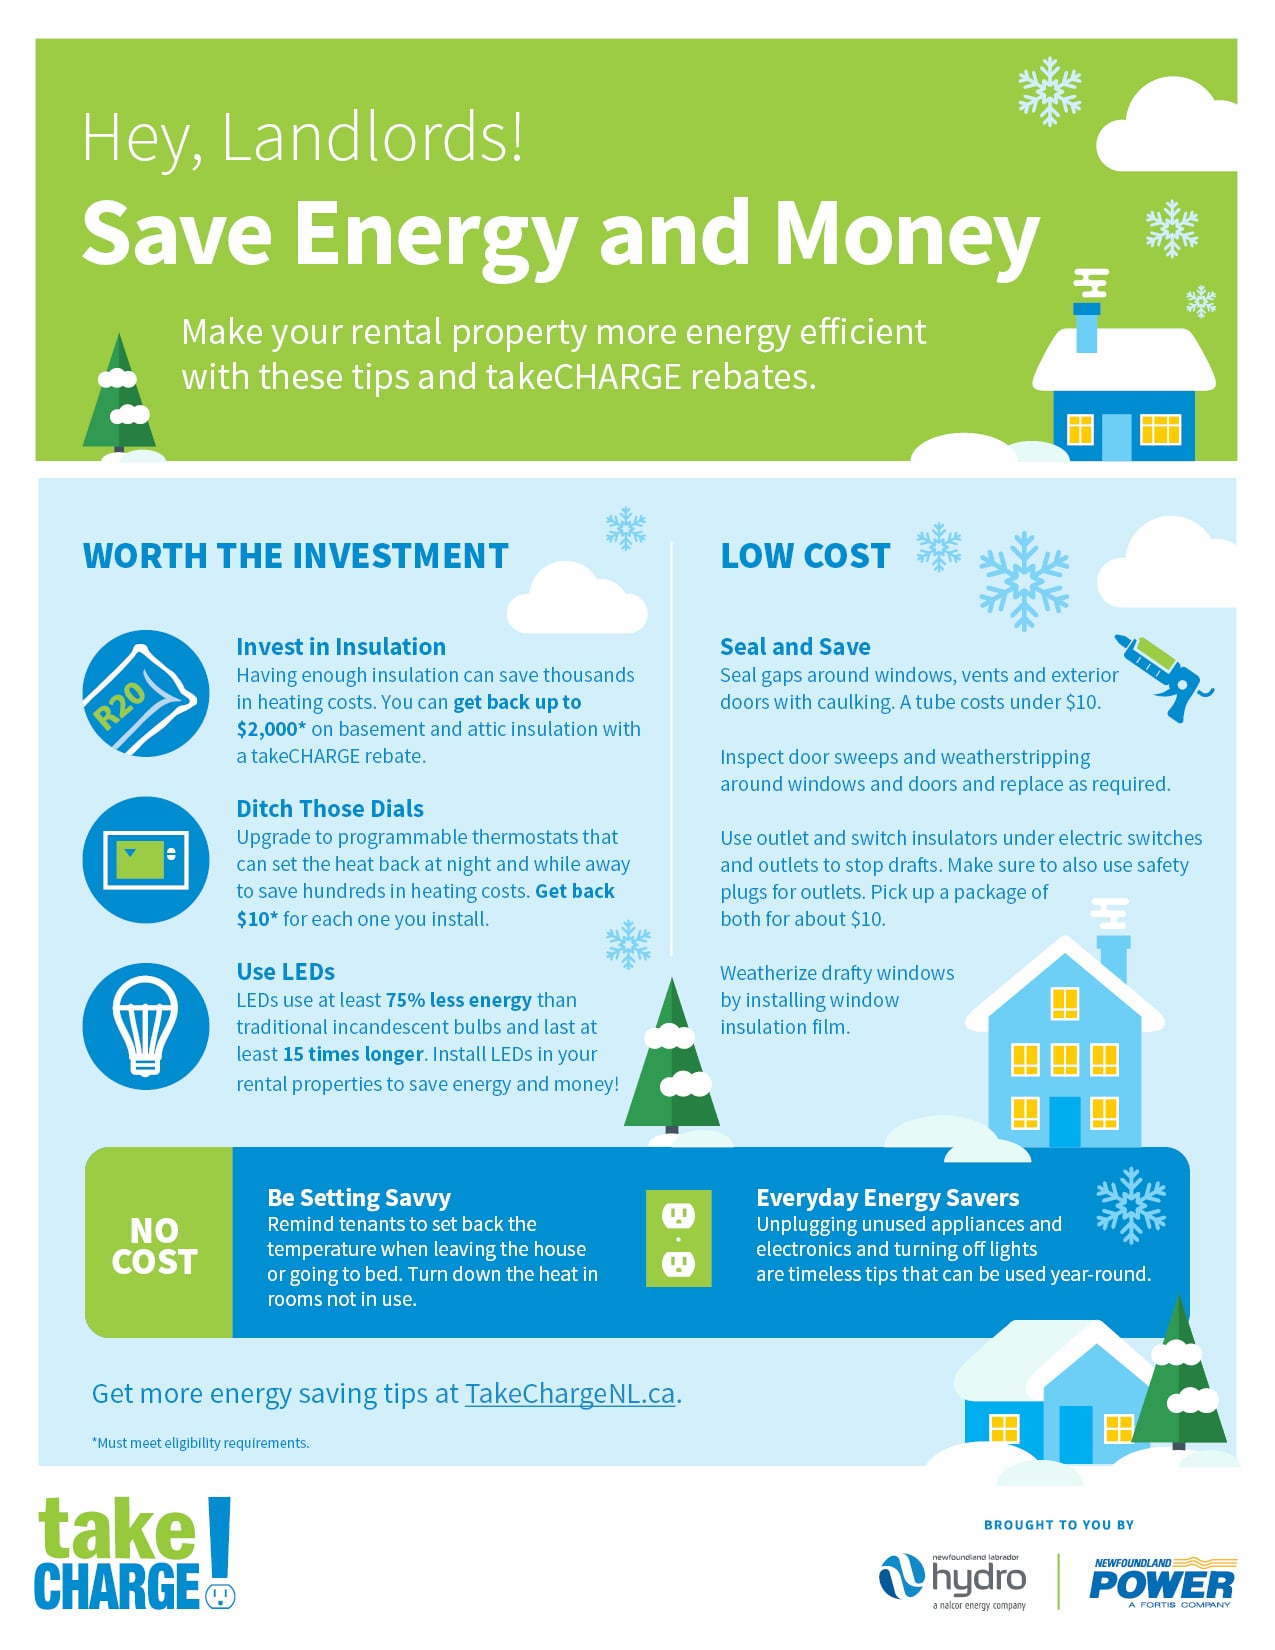 Hey, Landlords! Save Energy and Money.